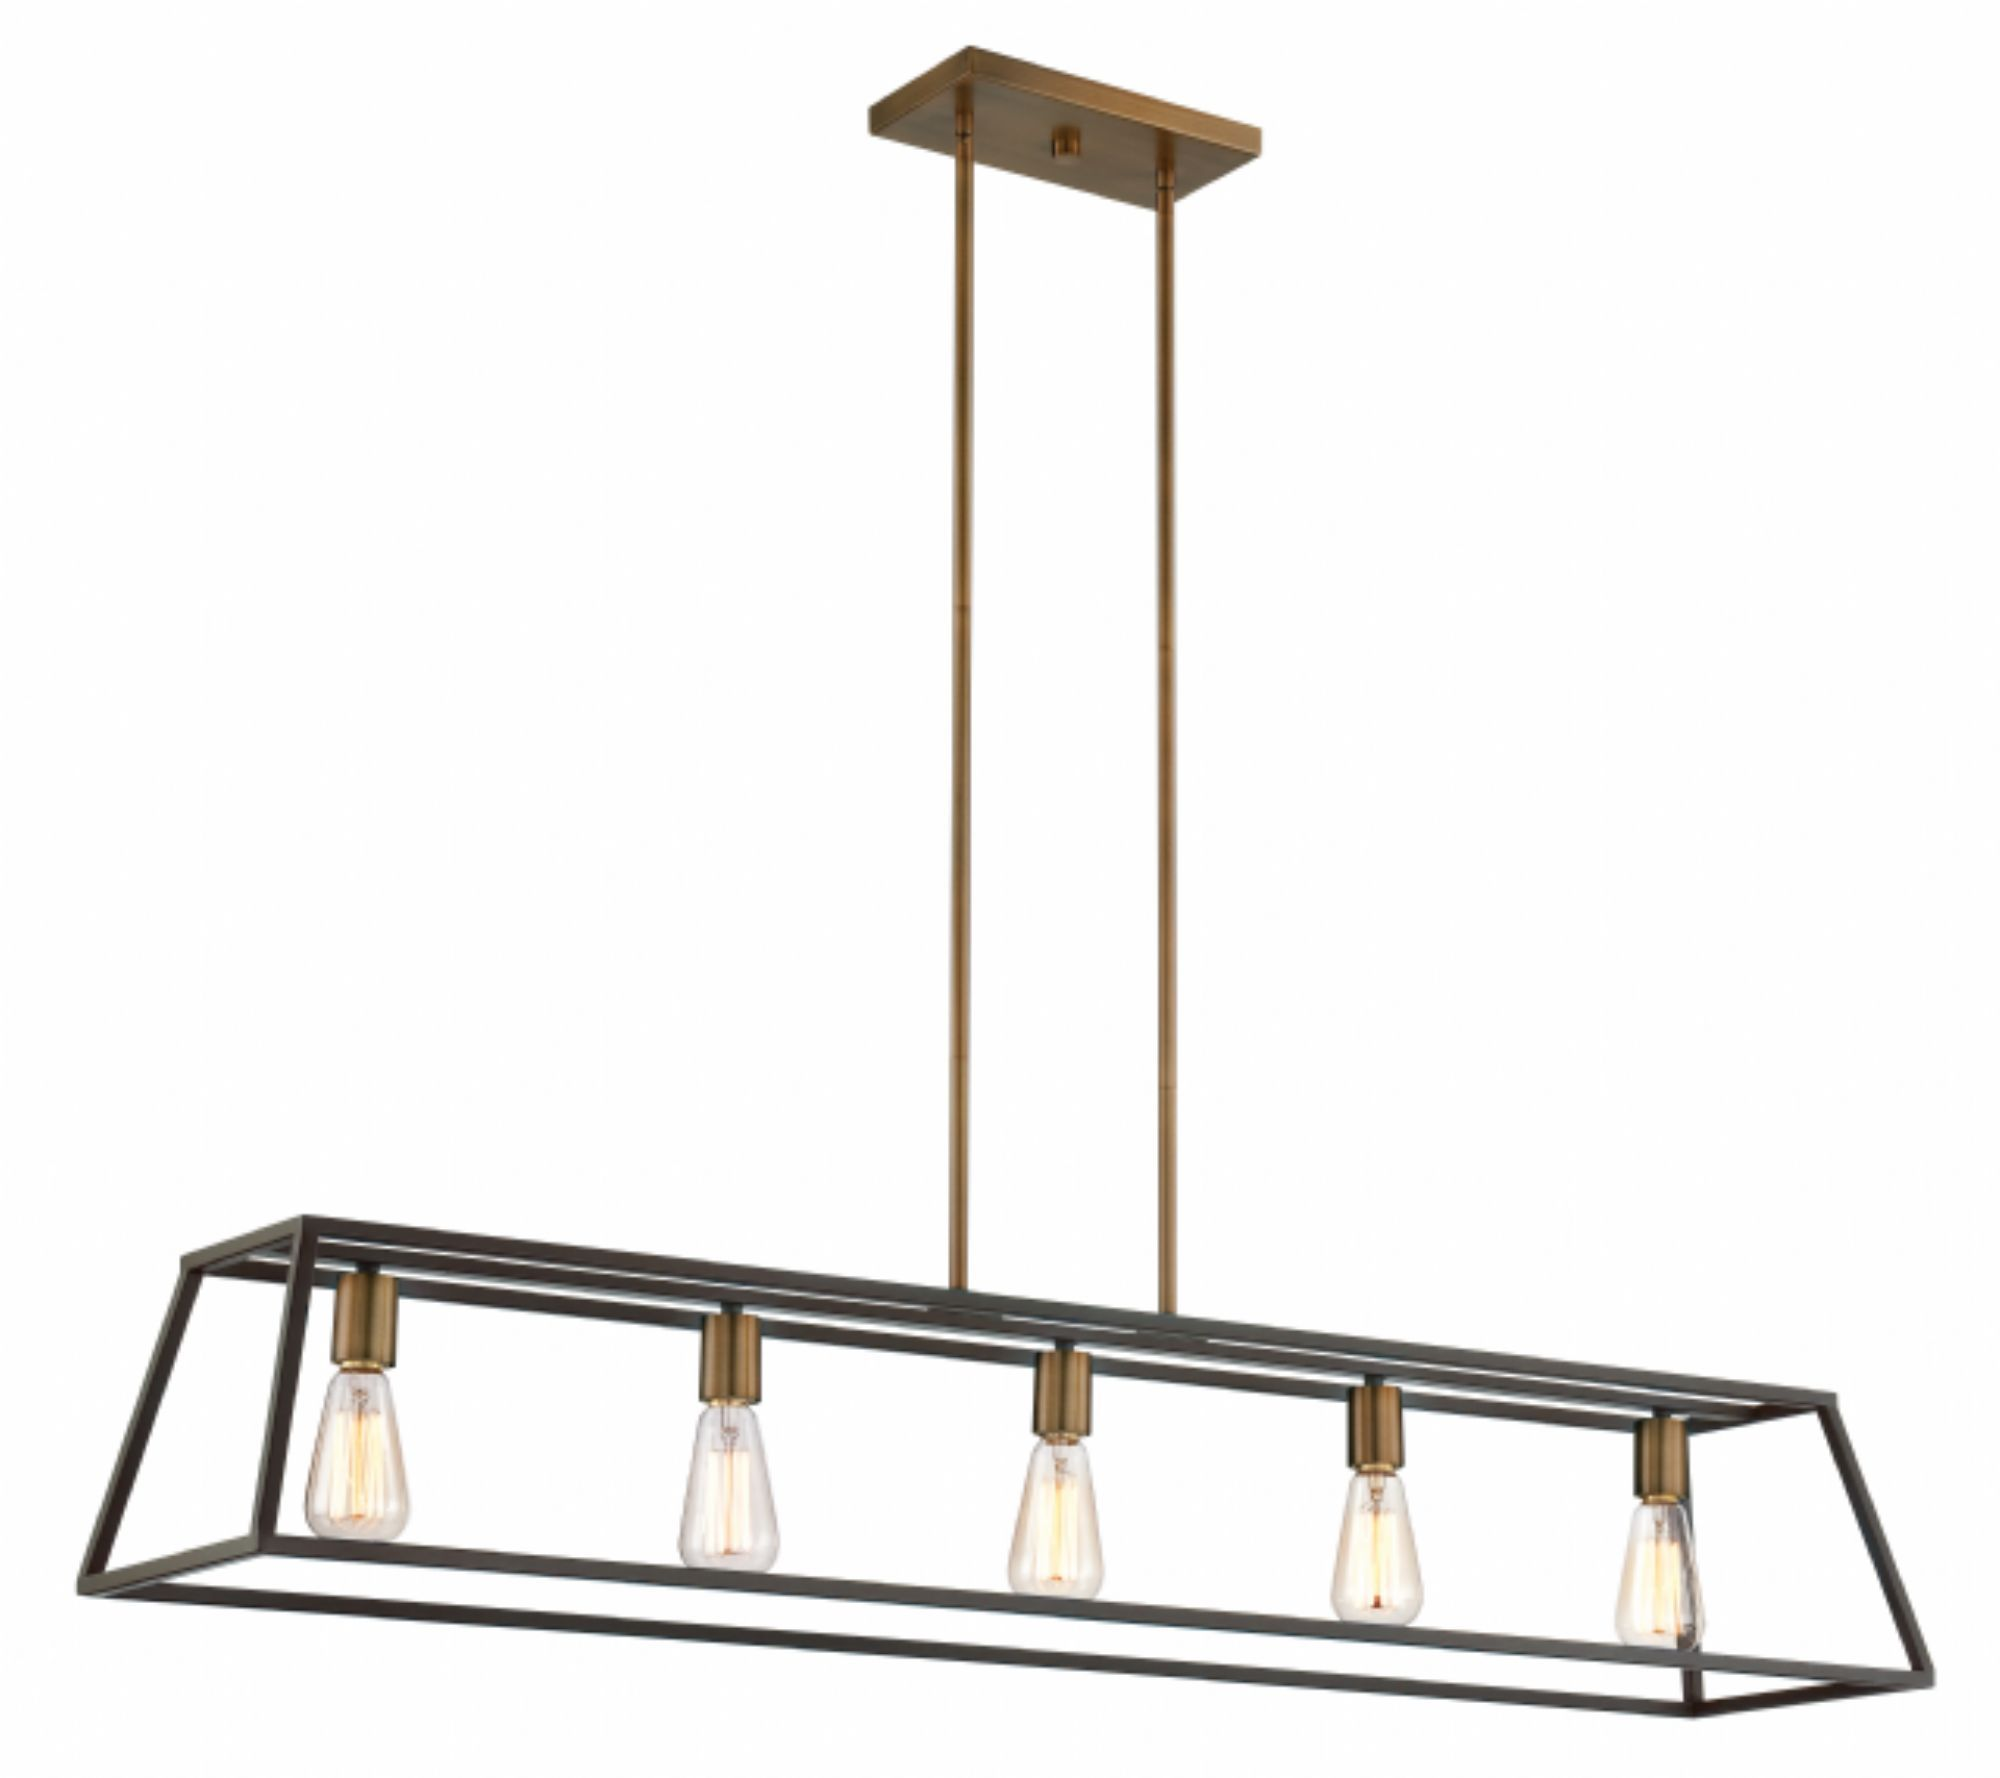 suspension suspendu multi luminaire home luminaire suspendu lampe salle manger et. Black Bedroom Furniture Sets. Home Design Ideas